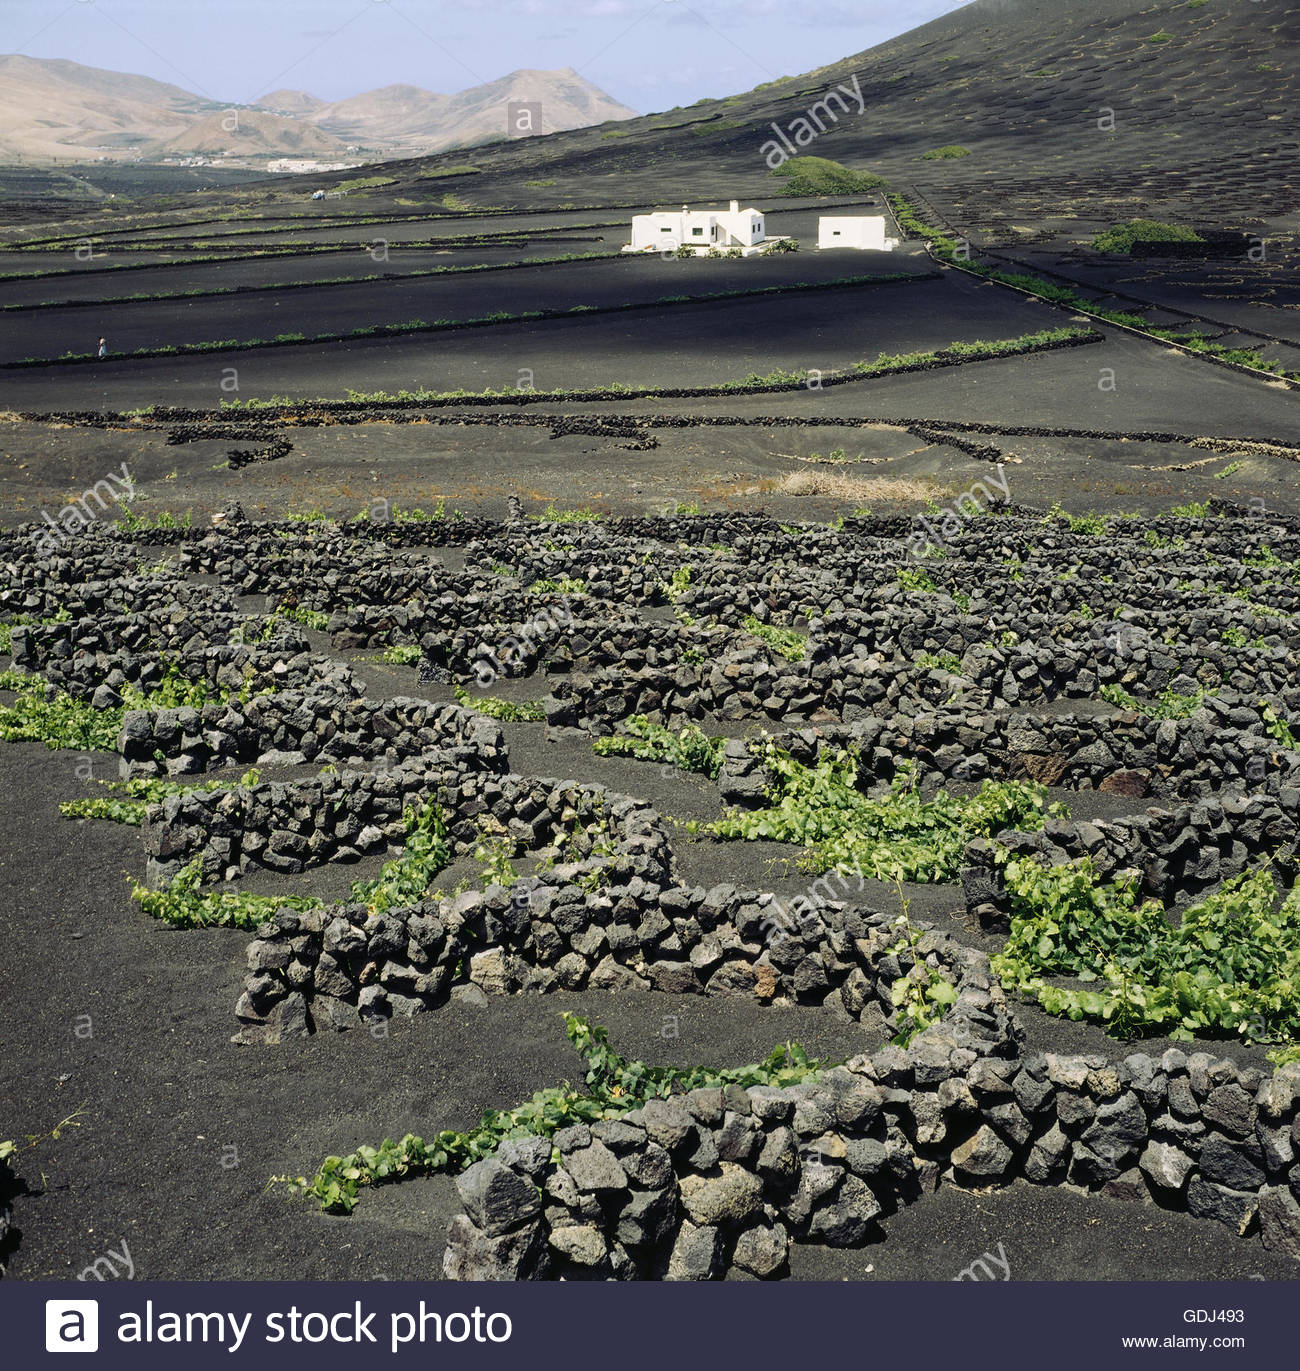 geography / travel, Spain, Canary Islands, Lanzarote, Geria, grape vine in dry farming, in volcanic ash, bei Geria, - Stock Image